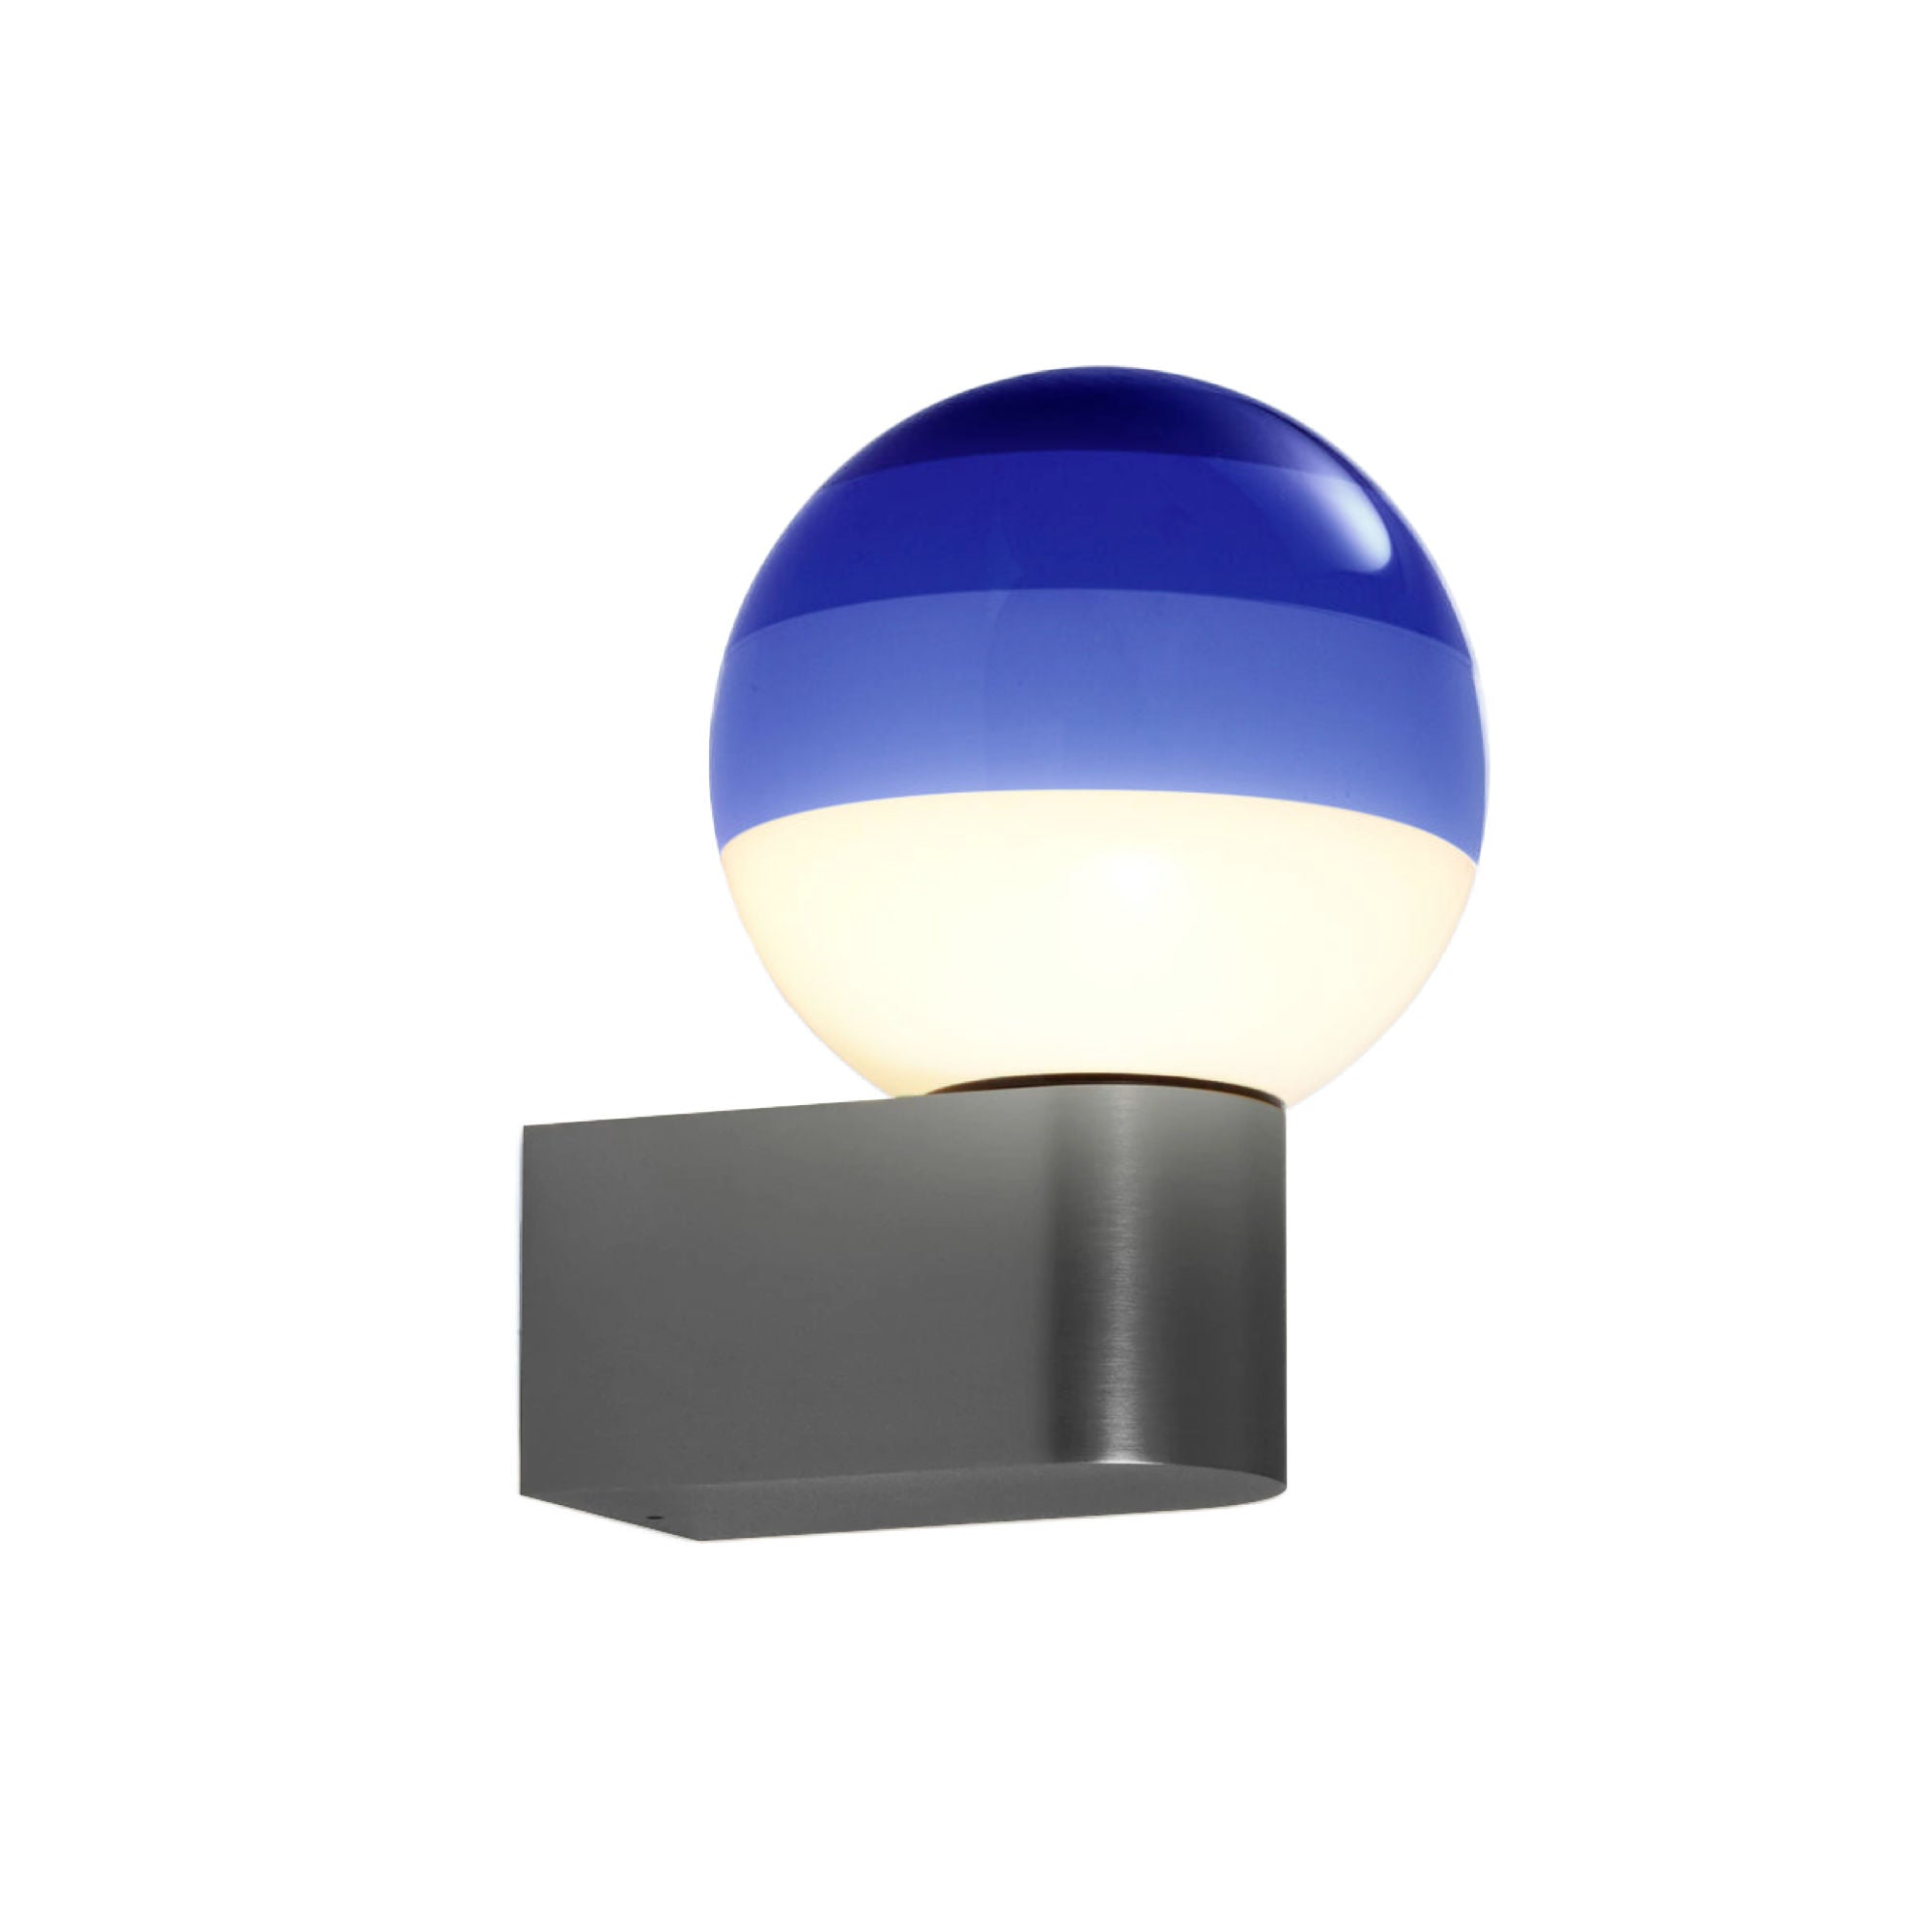 Marset Dipping light A1-13 wall lamp, blue